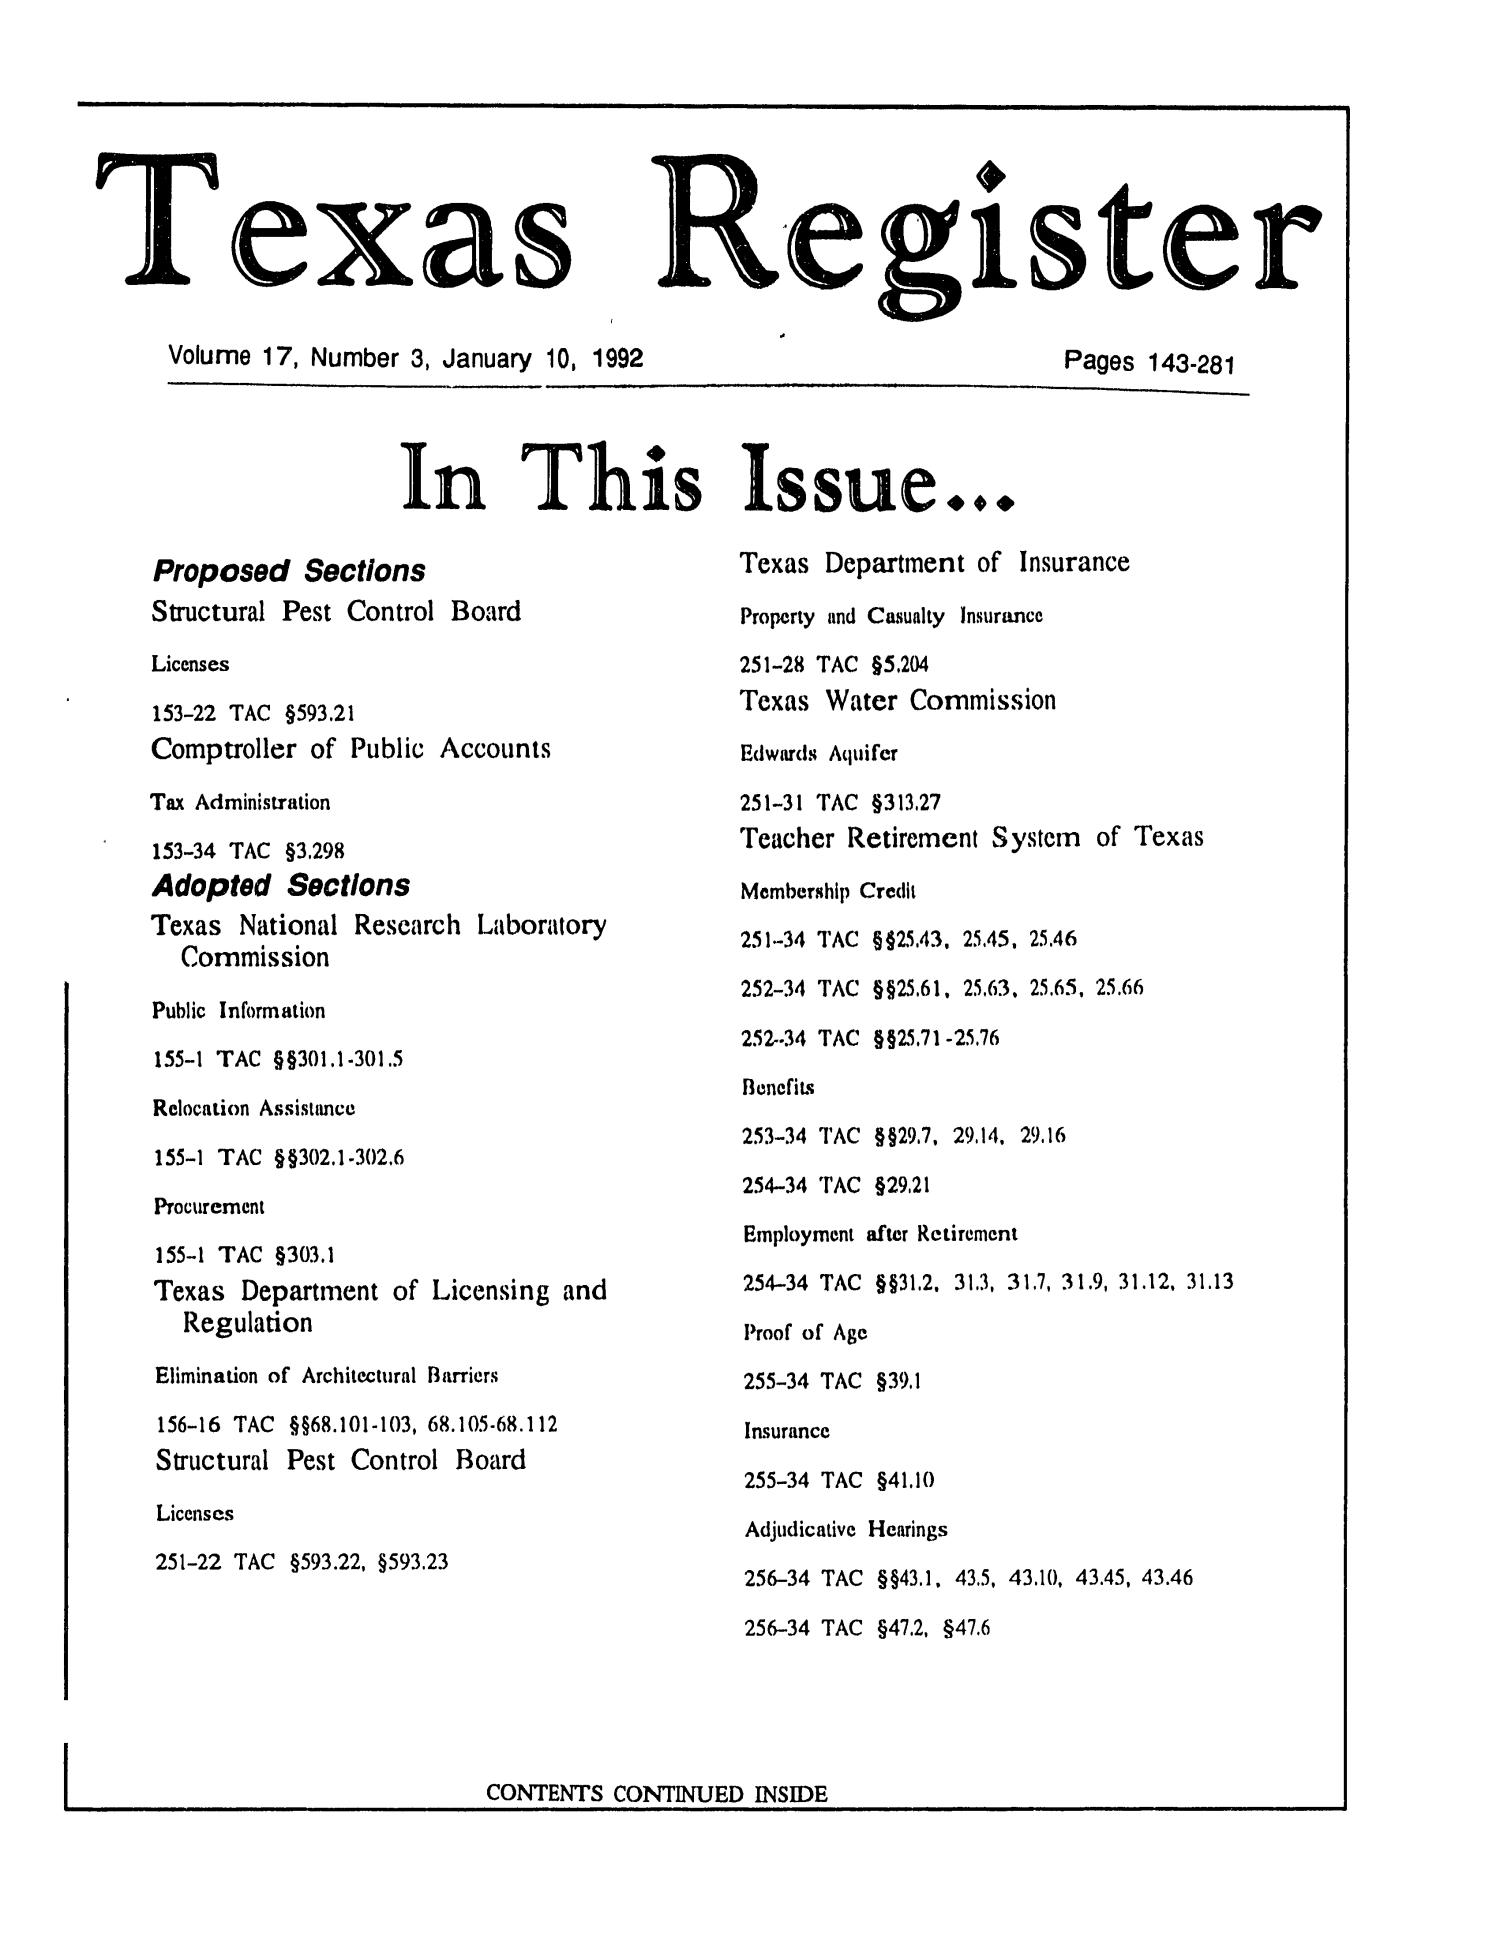 Texas Register, Volume 17, Number 3, Pages 143-281, January 10, 1992                                                                                                      Title Page